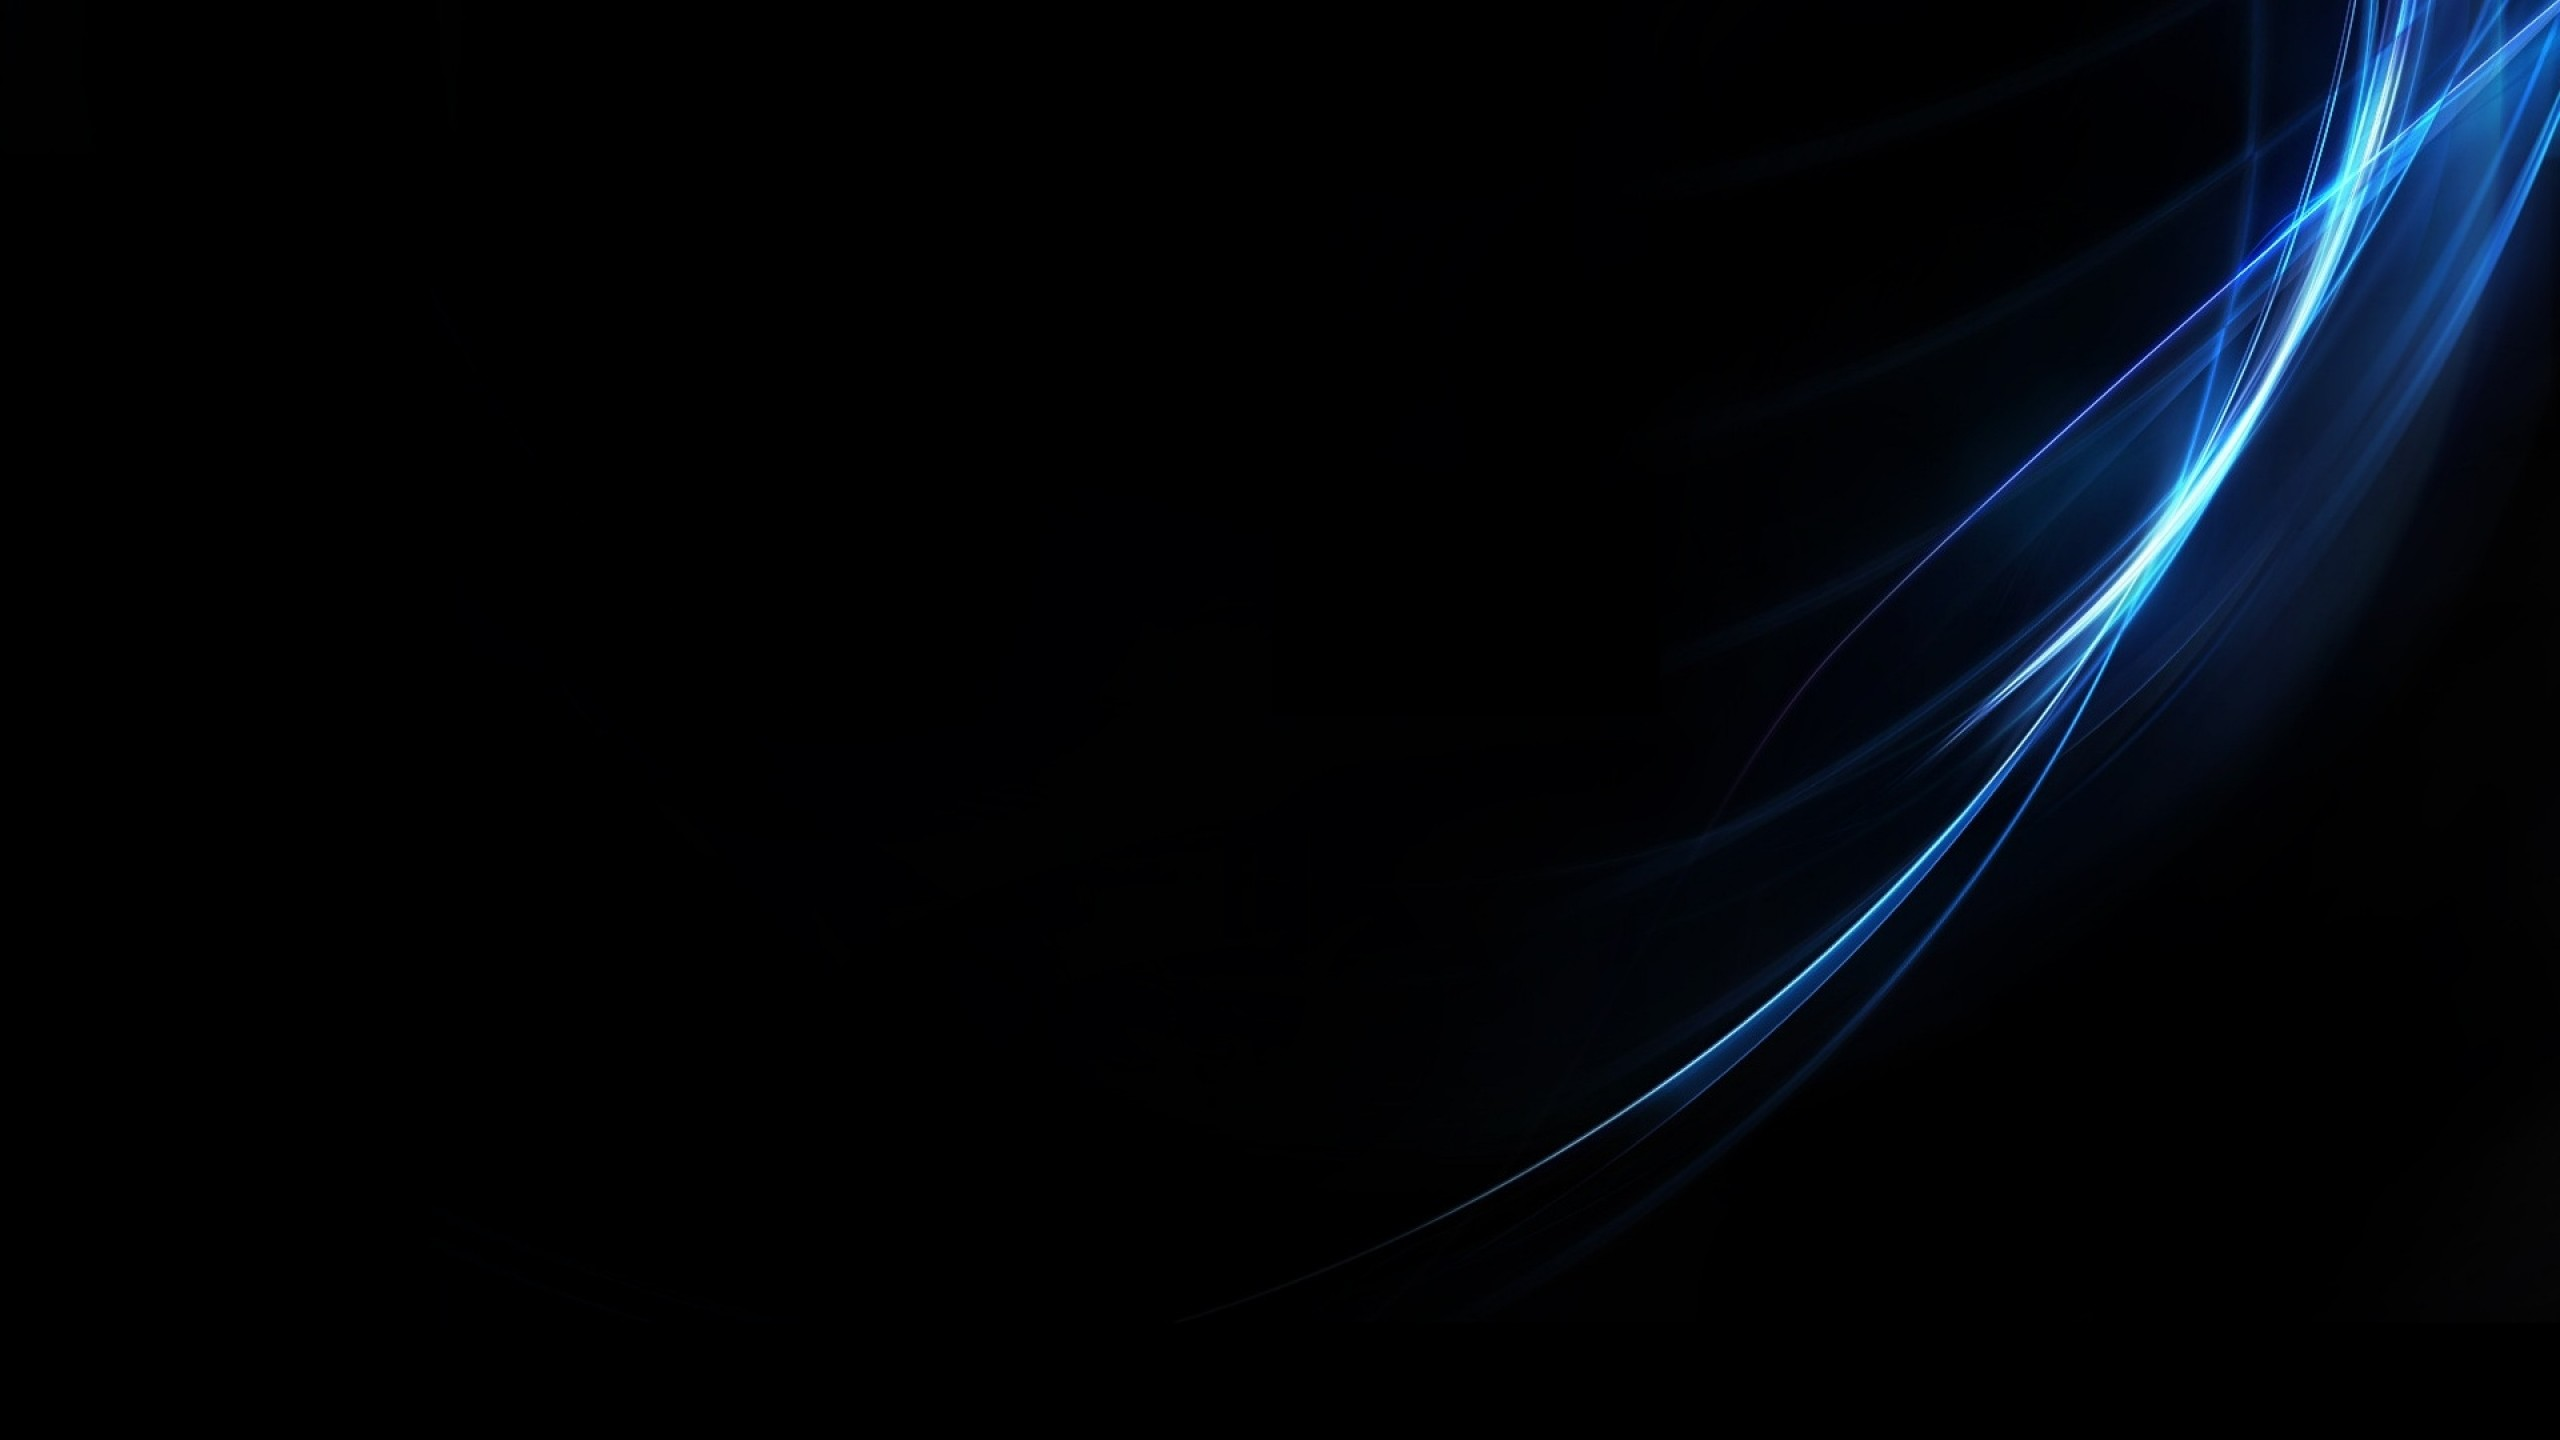 Black Abstract Windows 8.1 Wallpapers | All for Windows 10 Free